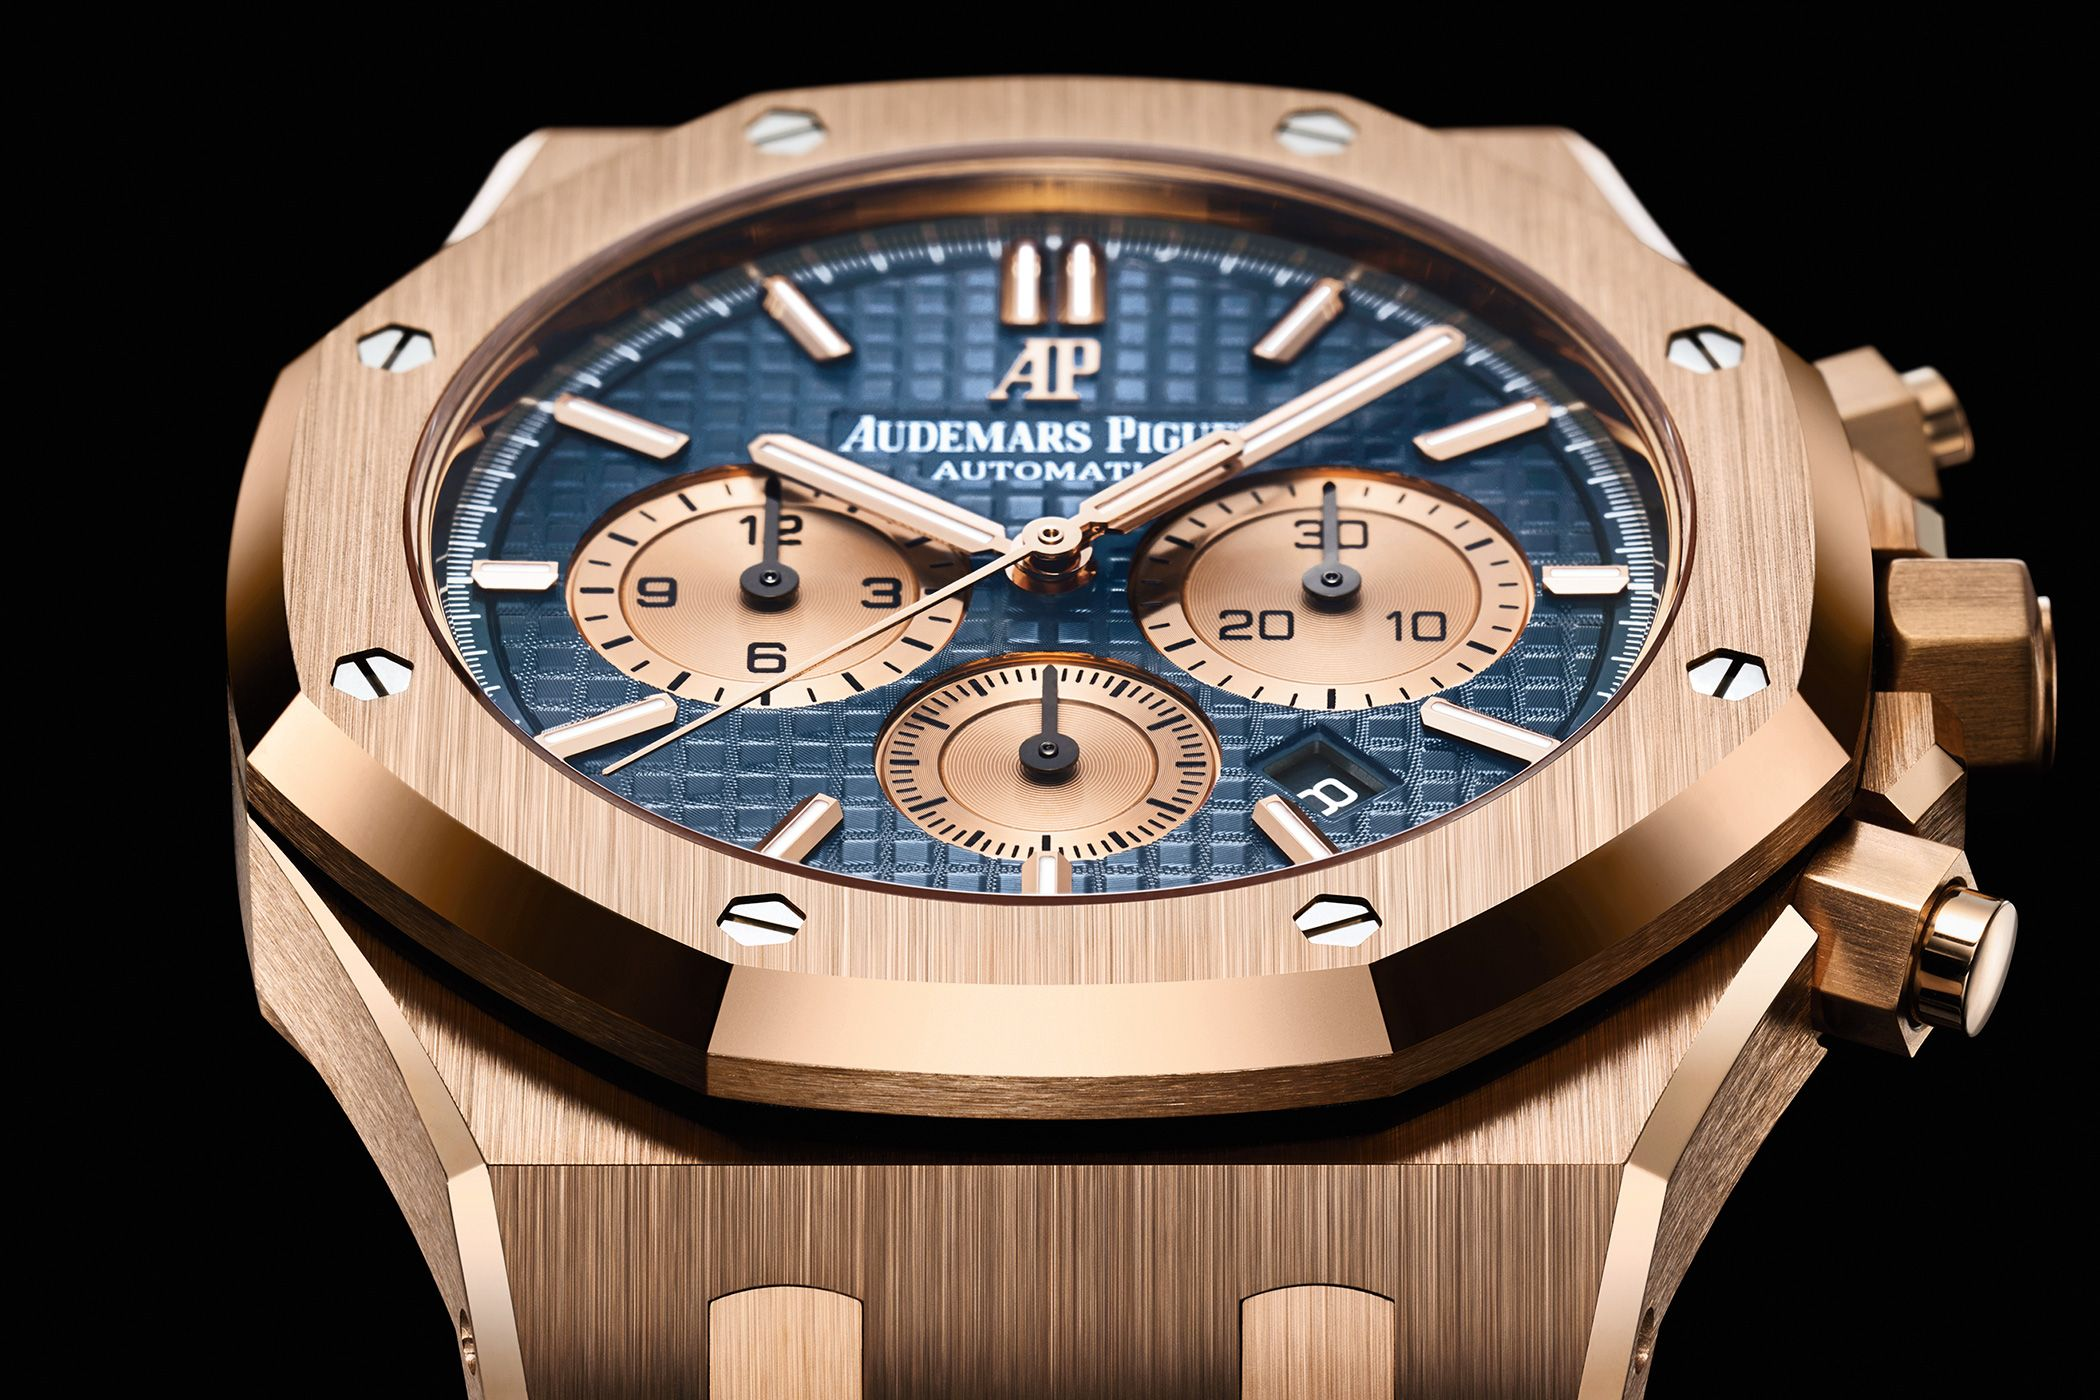 c396146cd62 This year Audemars Piguet hit an important milestone in the form of the  20th anniversary of the Royal Oak Chronograph. Since its inception in 1997